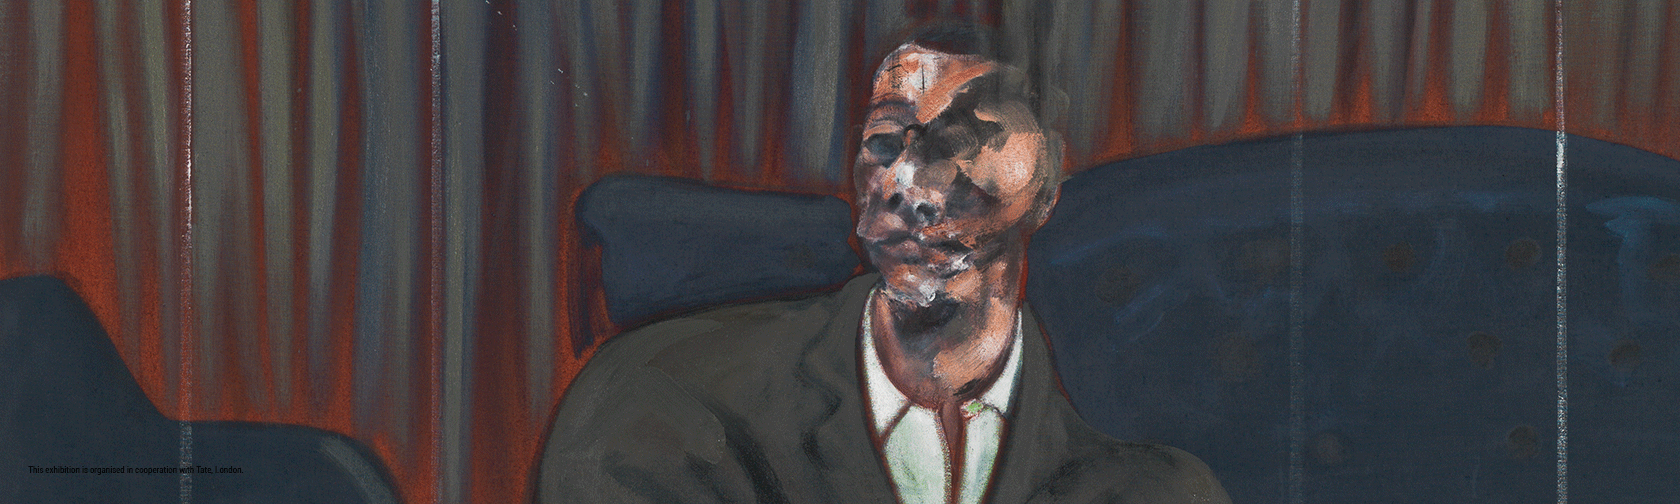 Francis Bacon_ Seated Figure_BACON, FREUD E LA SCUOLA DI LONDRA